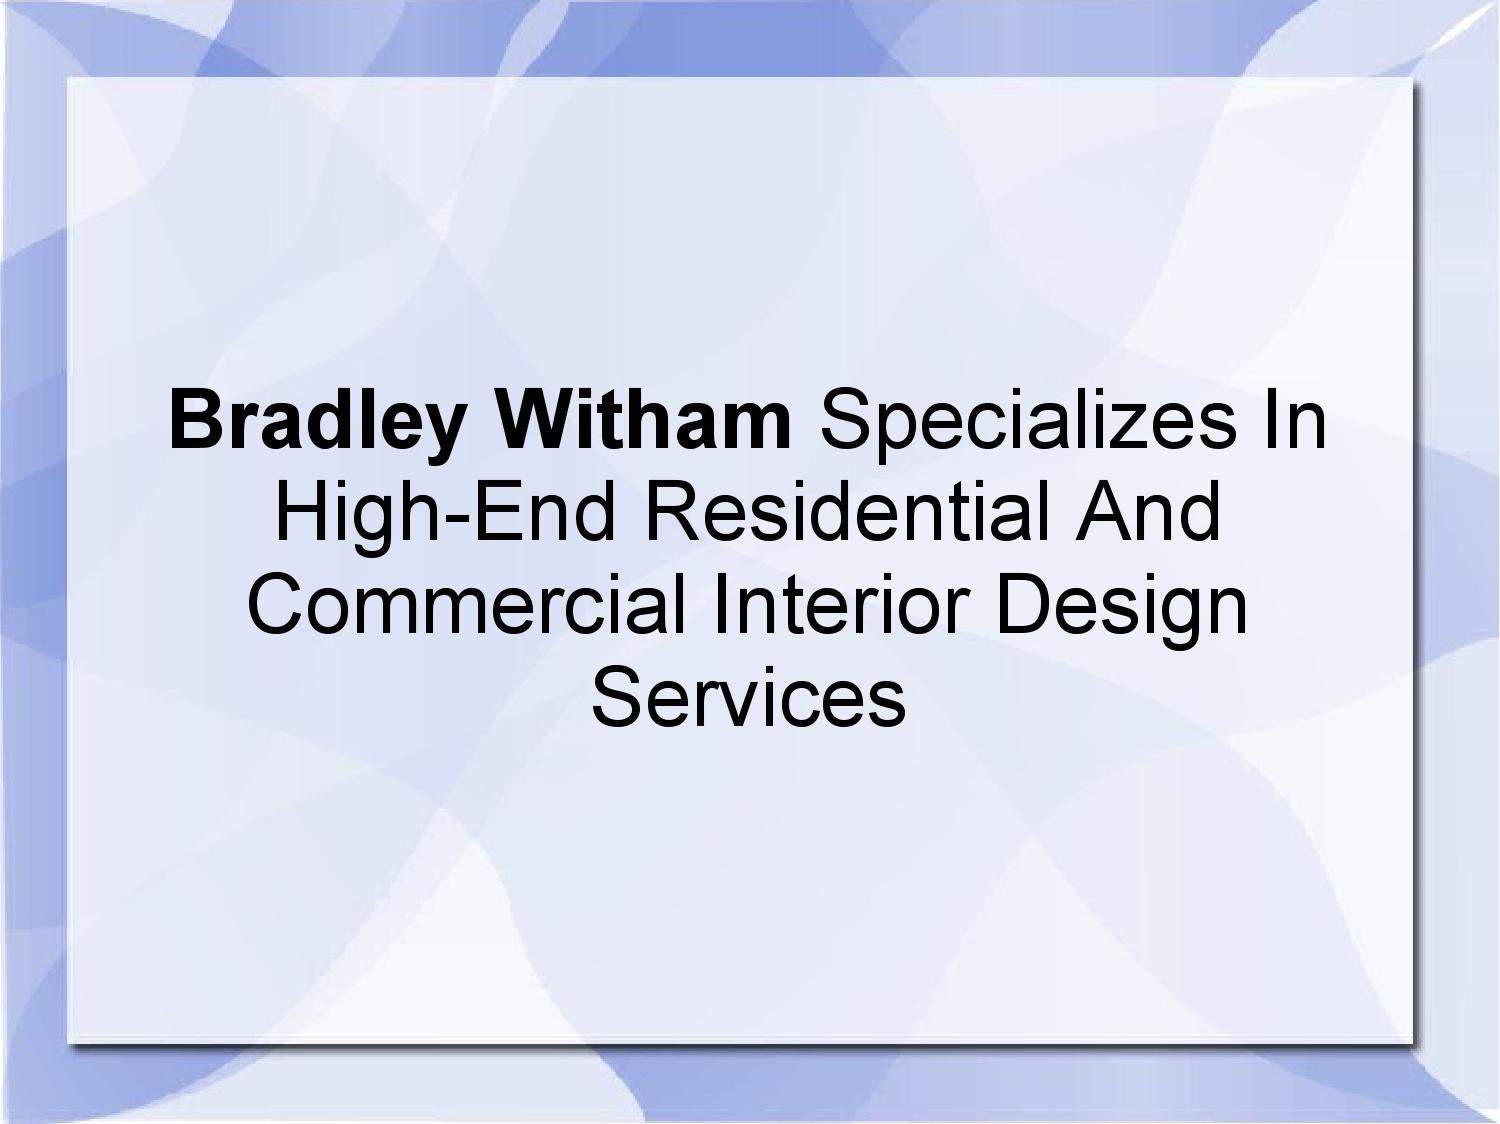 E Interior Design Services Bradley Witham Specializes In High End Residential And